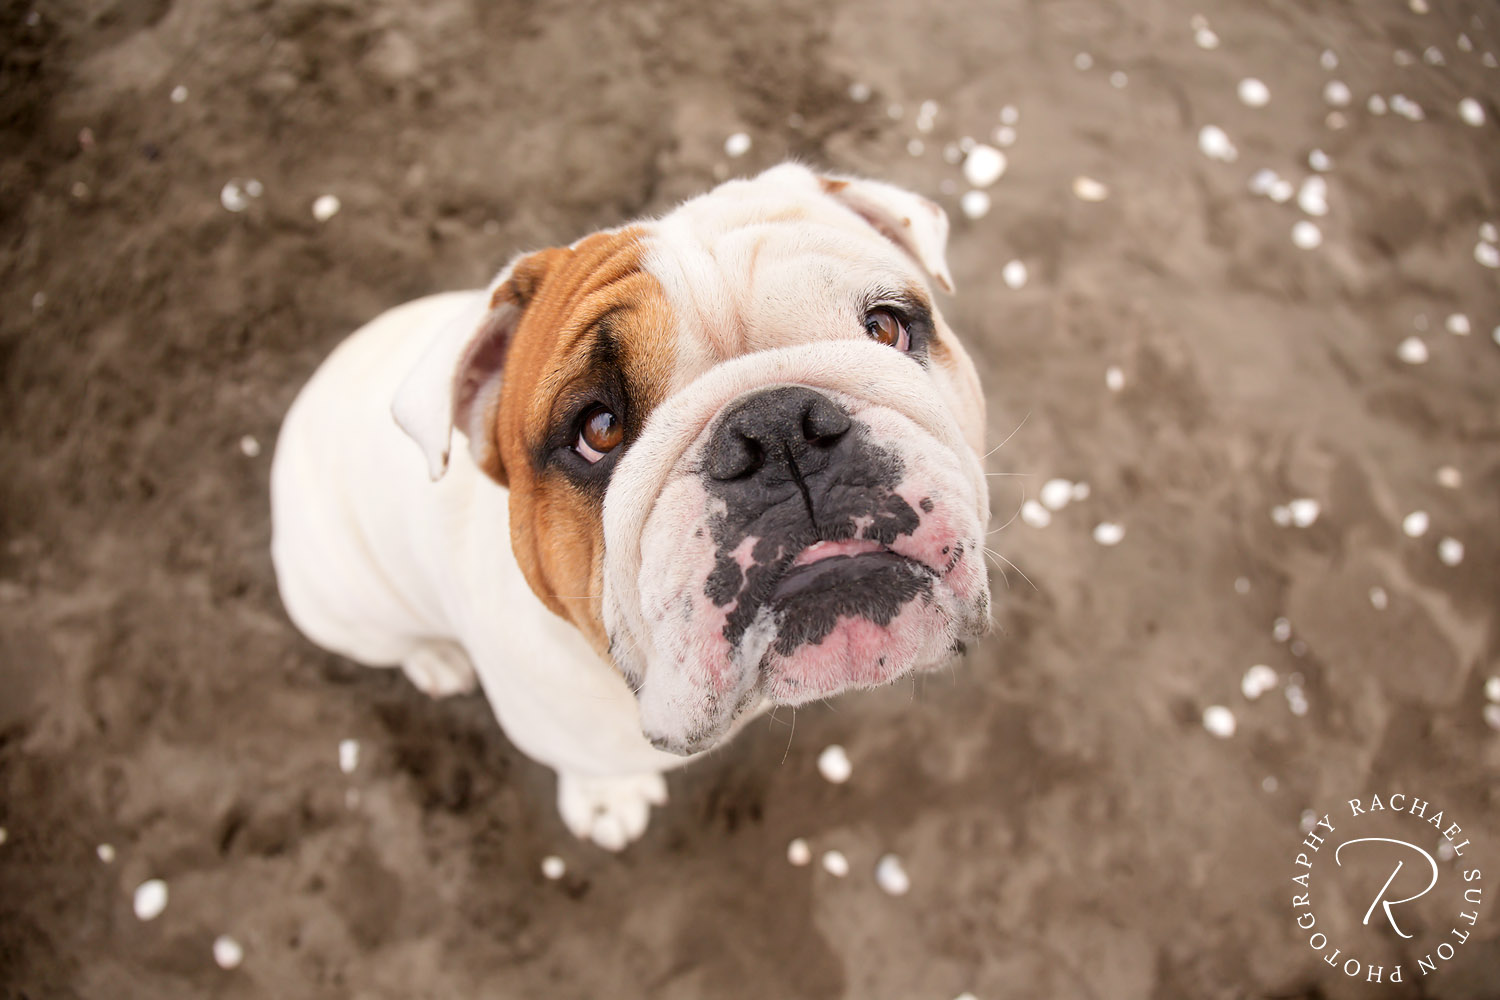 pet photo, Bulldog, dog, puppy dog eyes at camera on the beach, seashells on sand